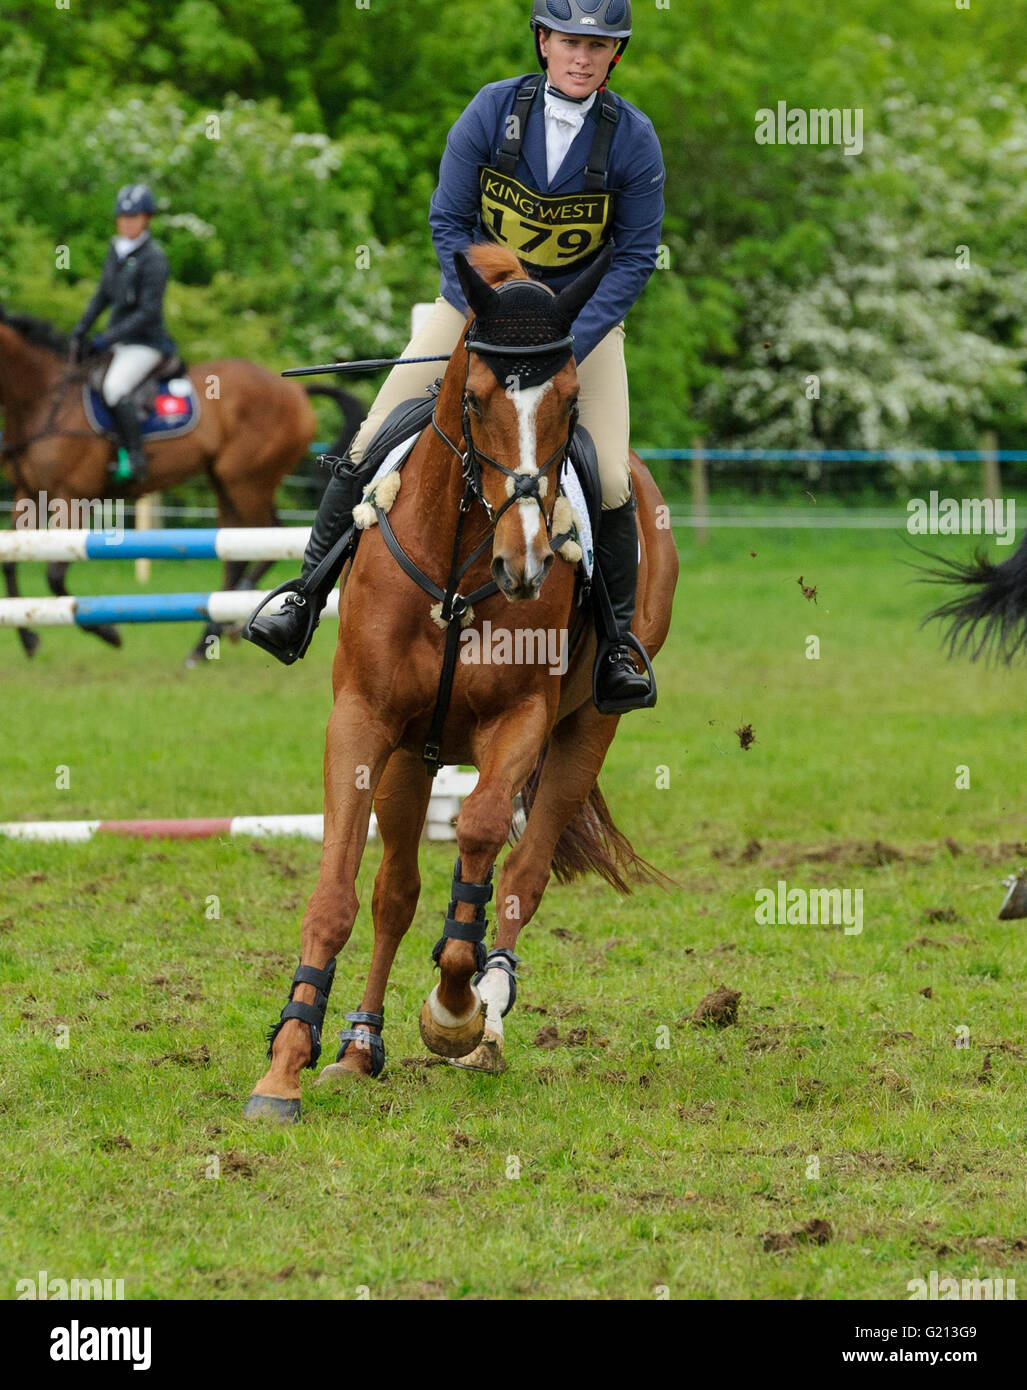 Rockingham Castle, Northamptonshire, UK. 21st May, 2016. Zara Tindall - Rockingham Castle International Horse Trials, Stock Photo